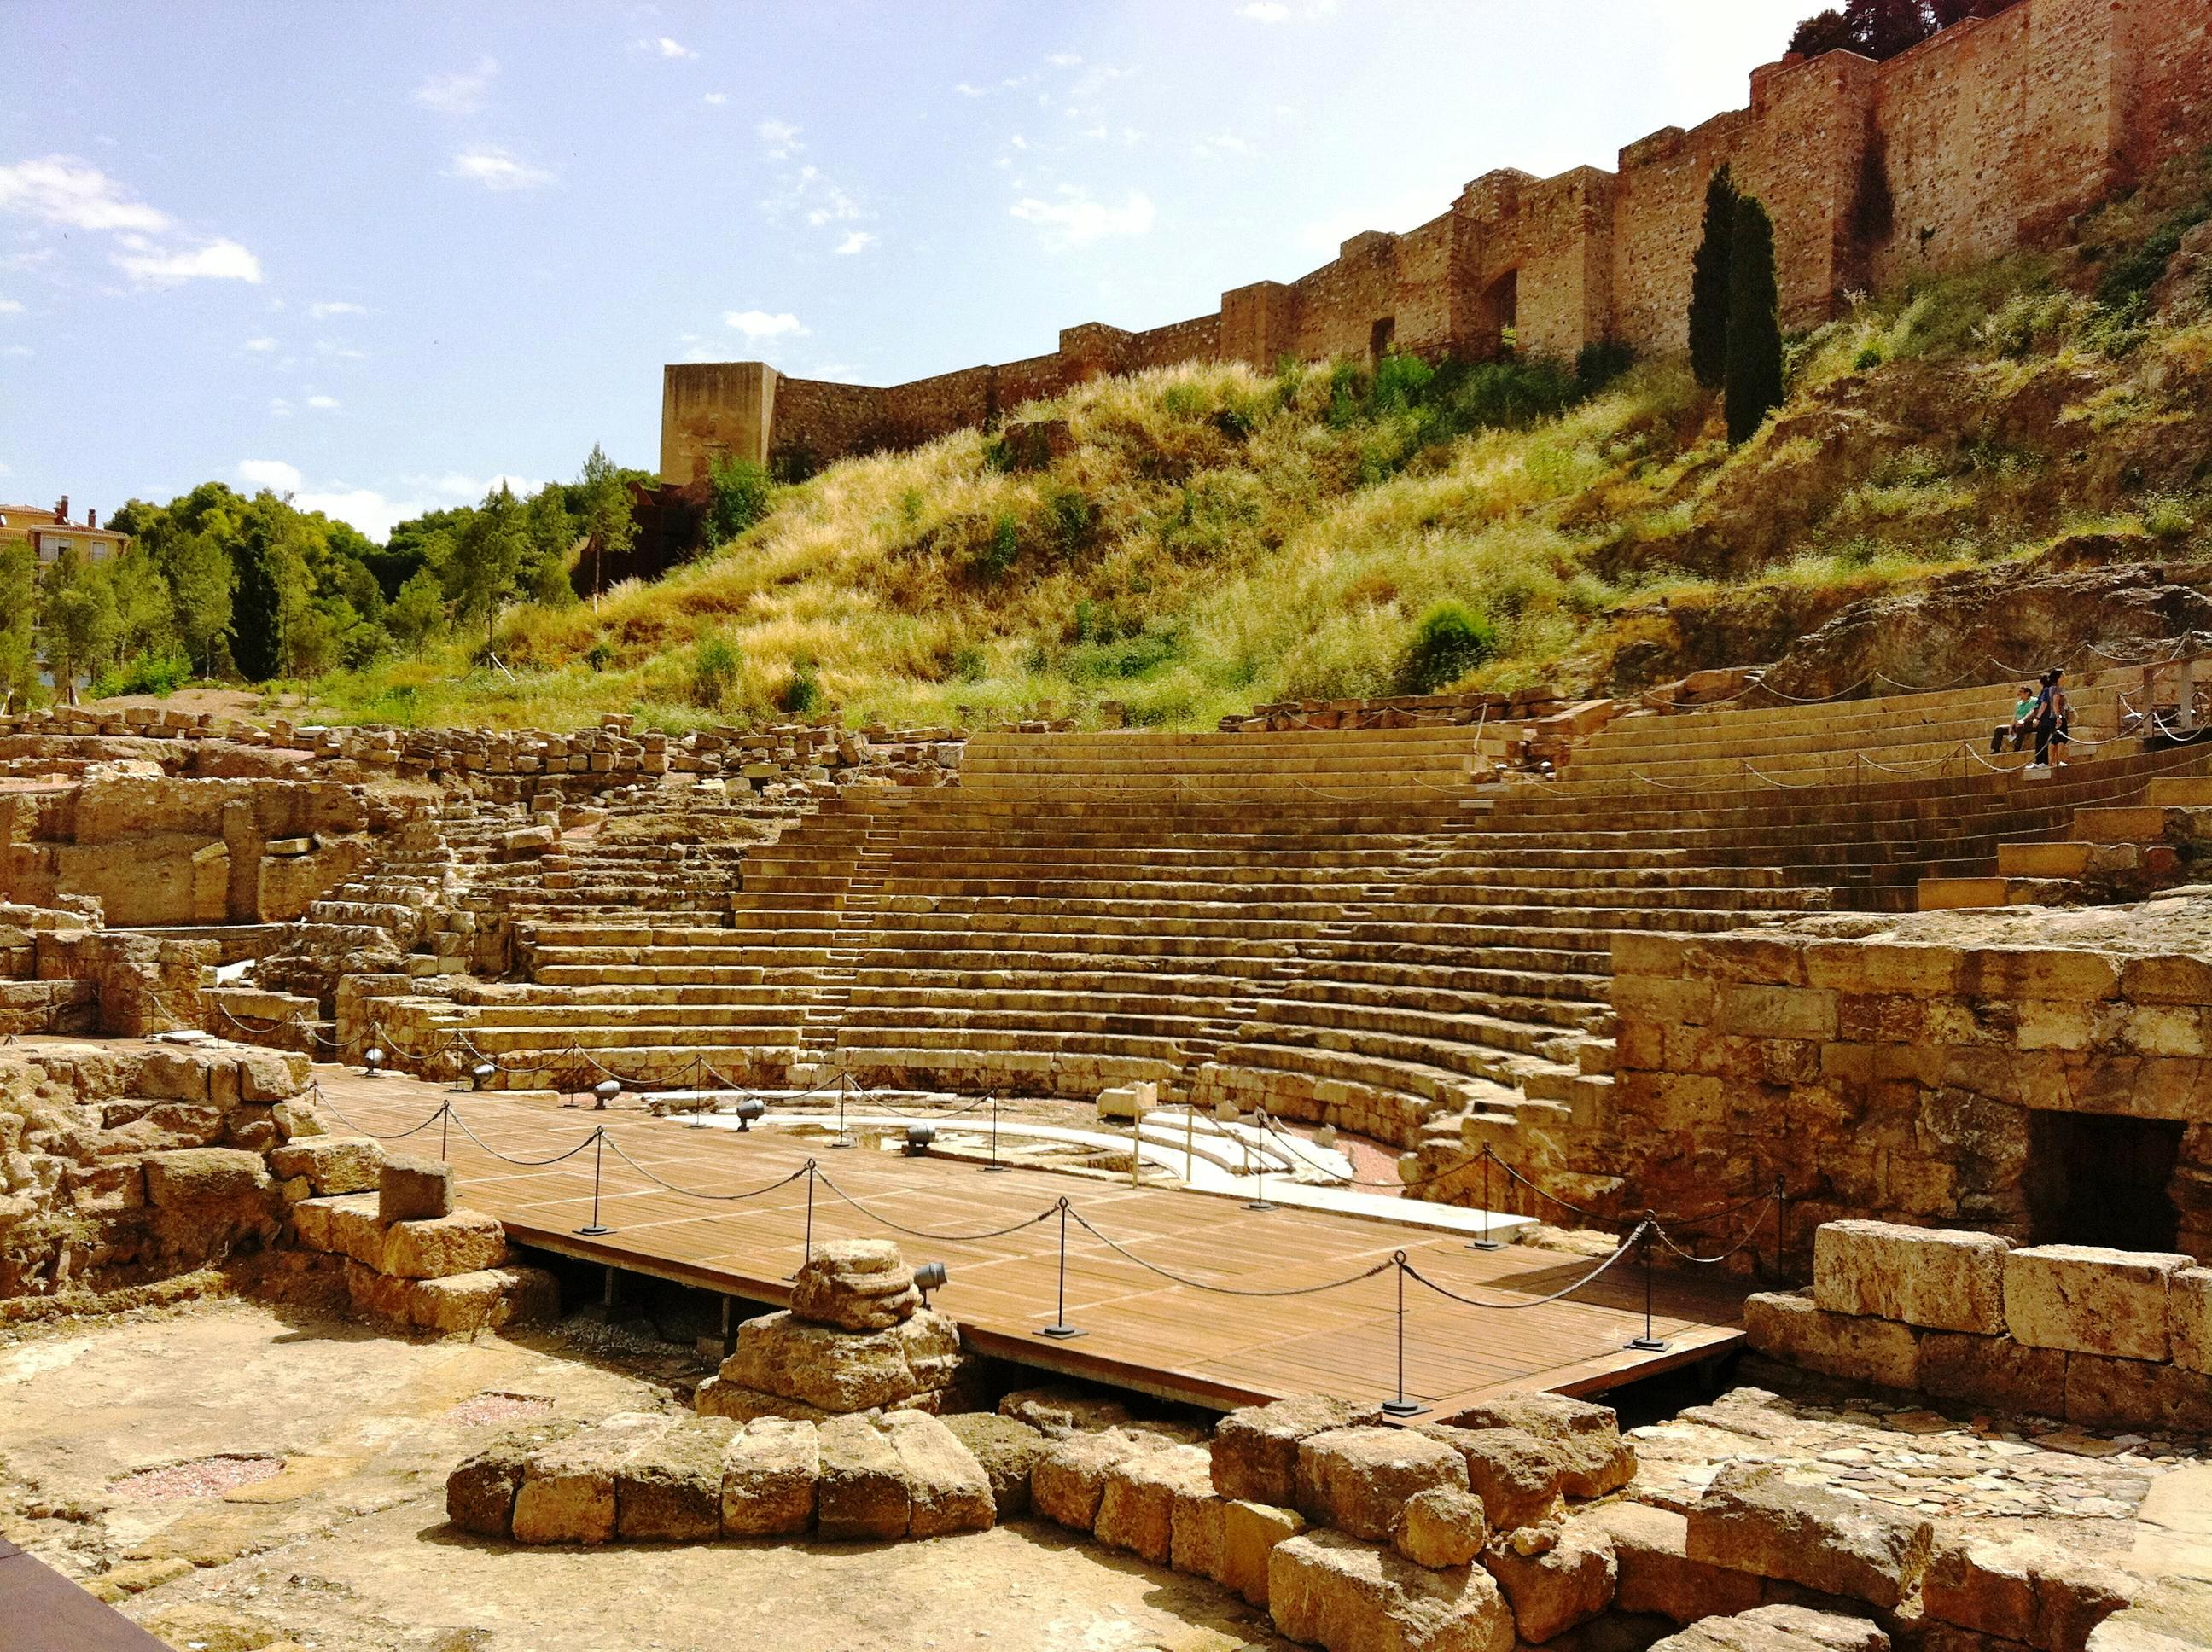 malaga, ruins of the roman theater, visit in malaga, contemporary art center, malaga botanical garden